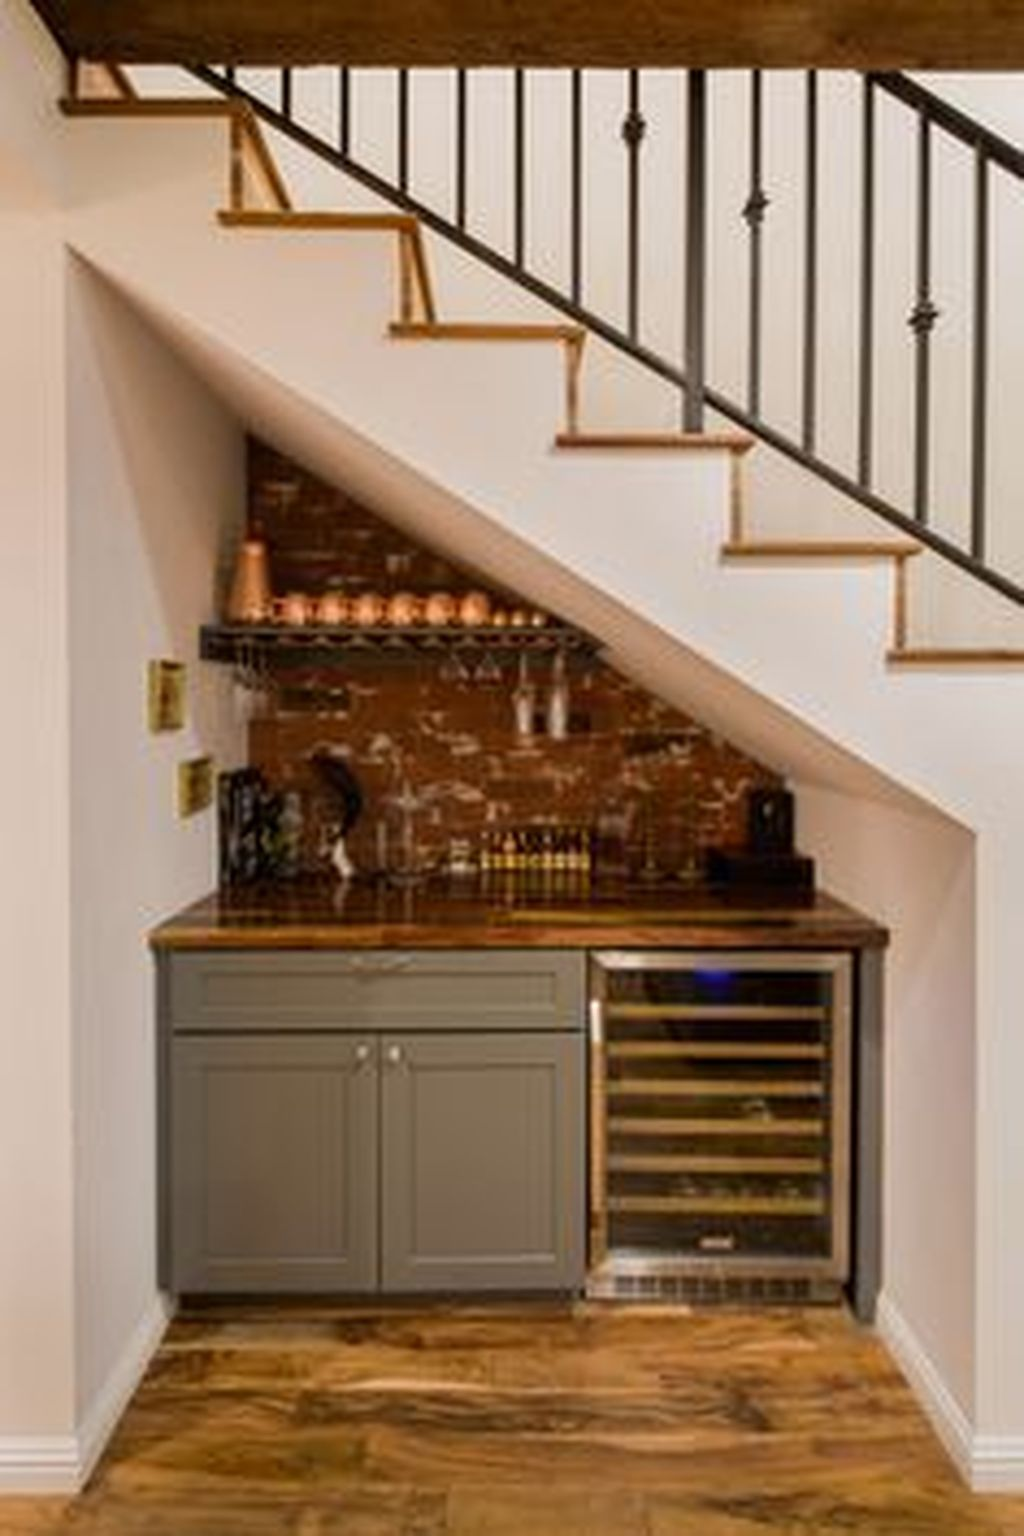 Pin By Trend4homy On Trending Decoration In 2019: Basement Stairs, Bar Under Stairs, Bars For Home